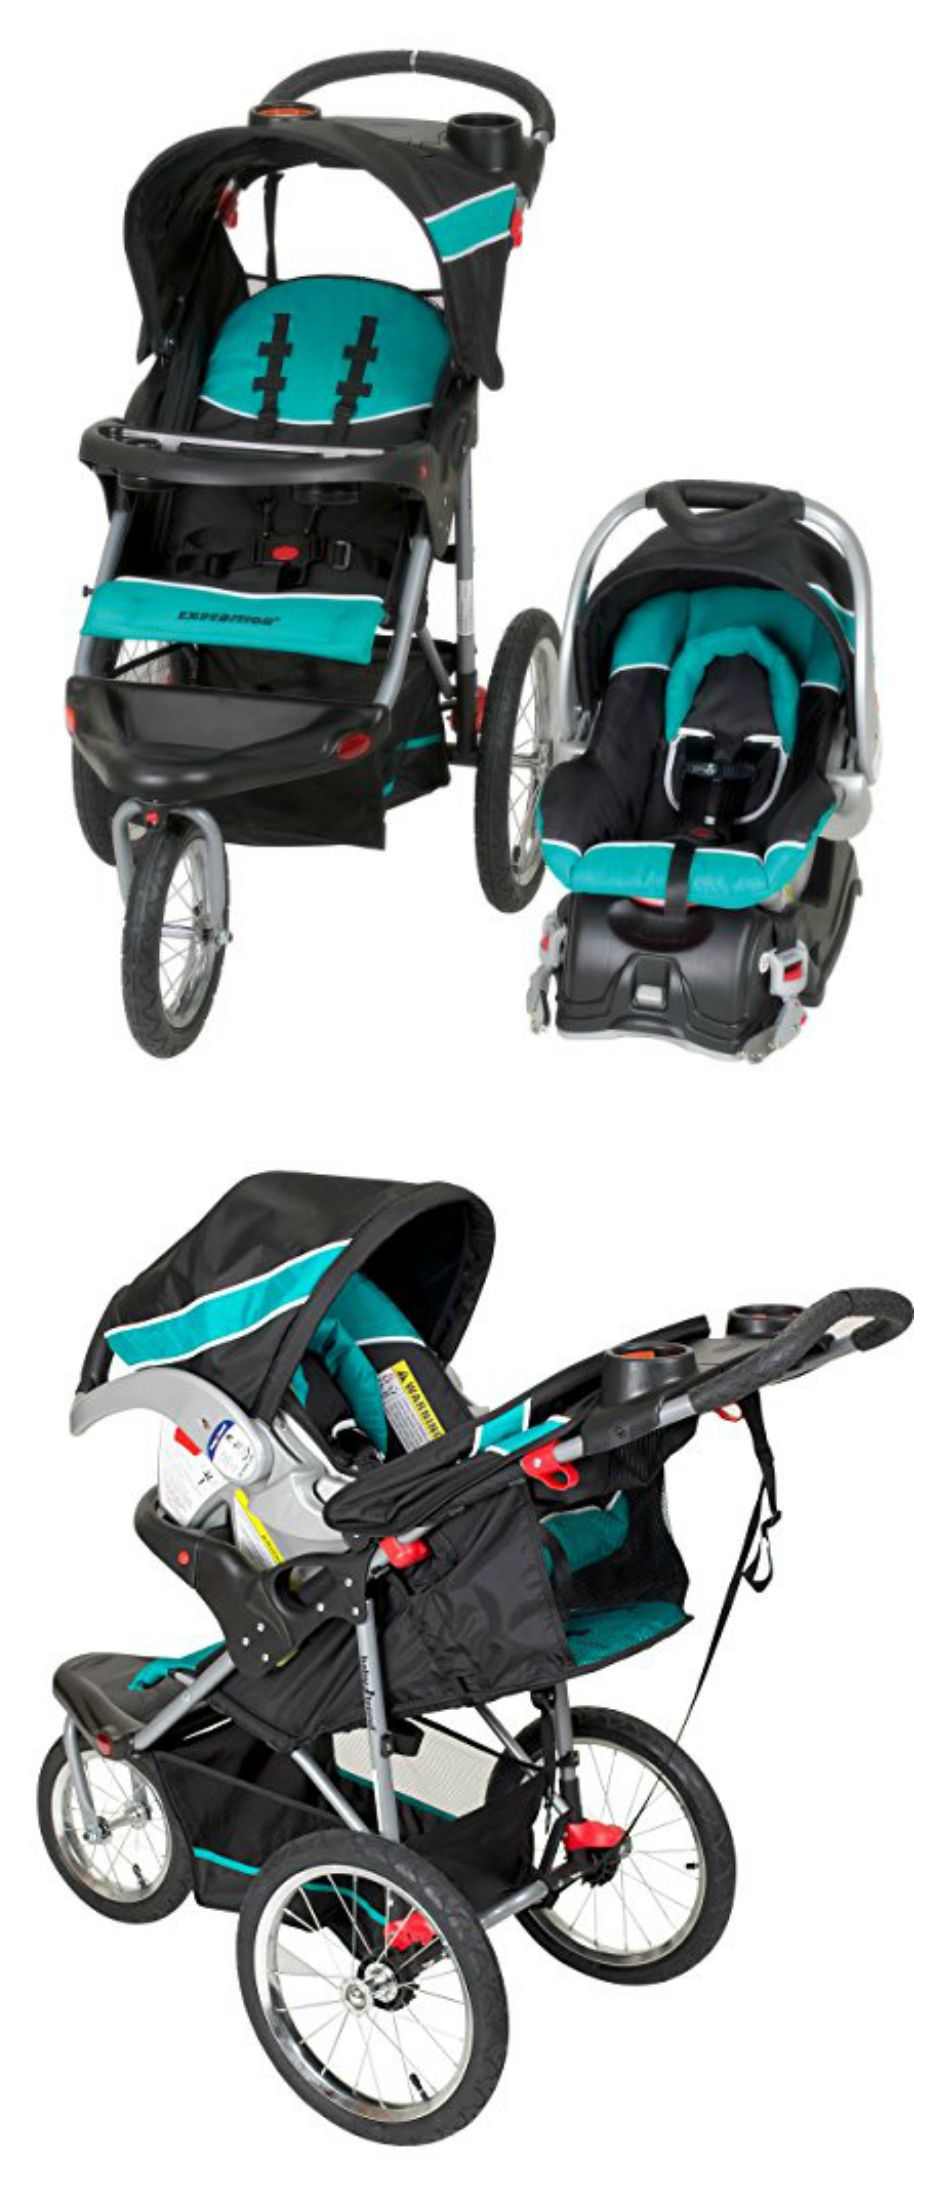 The Baby Trend Expedition Jogger Is On Our List Of The Best Travel